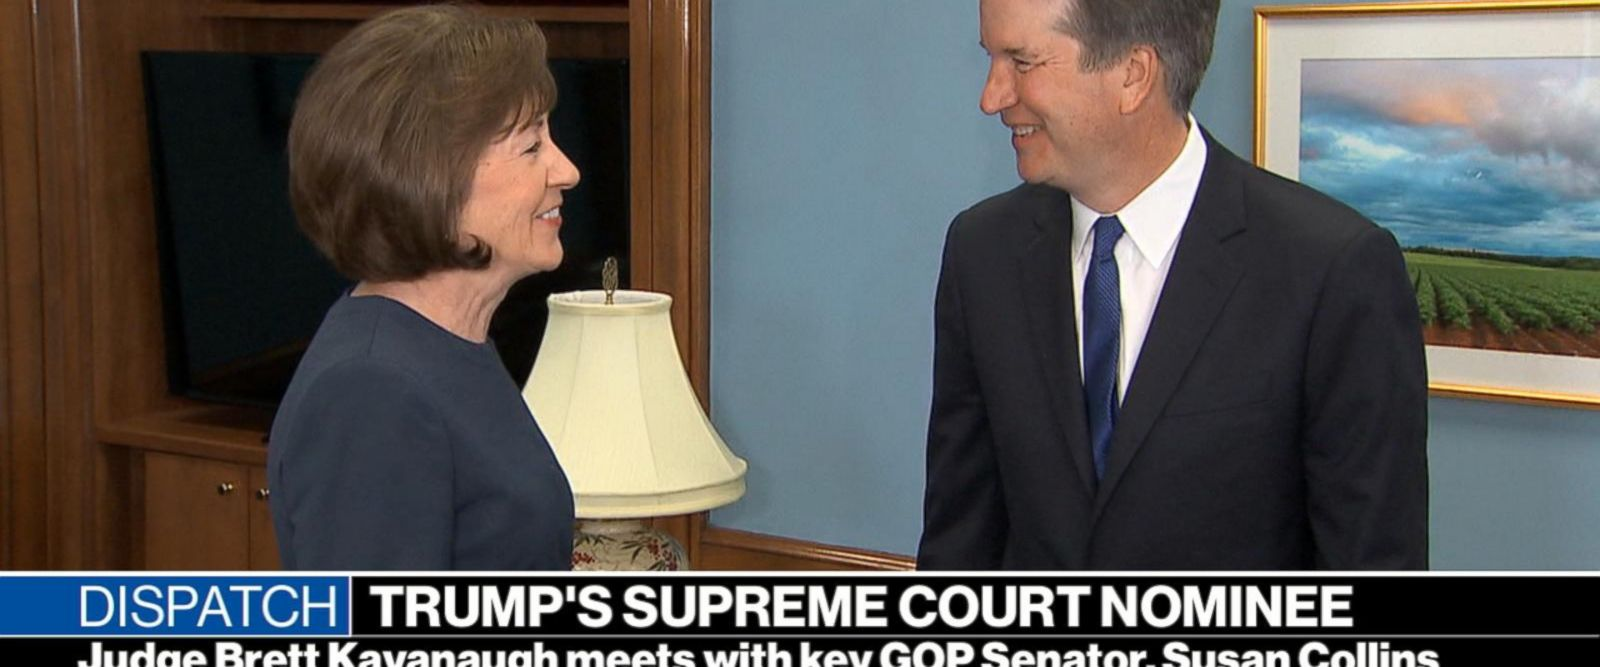 VIDEO: President Trump's Supreme Court nominee courts key GOP senator